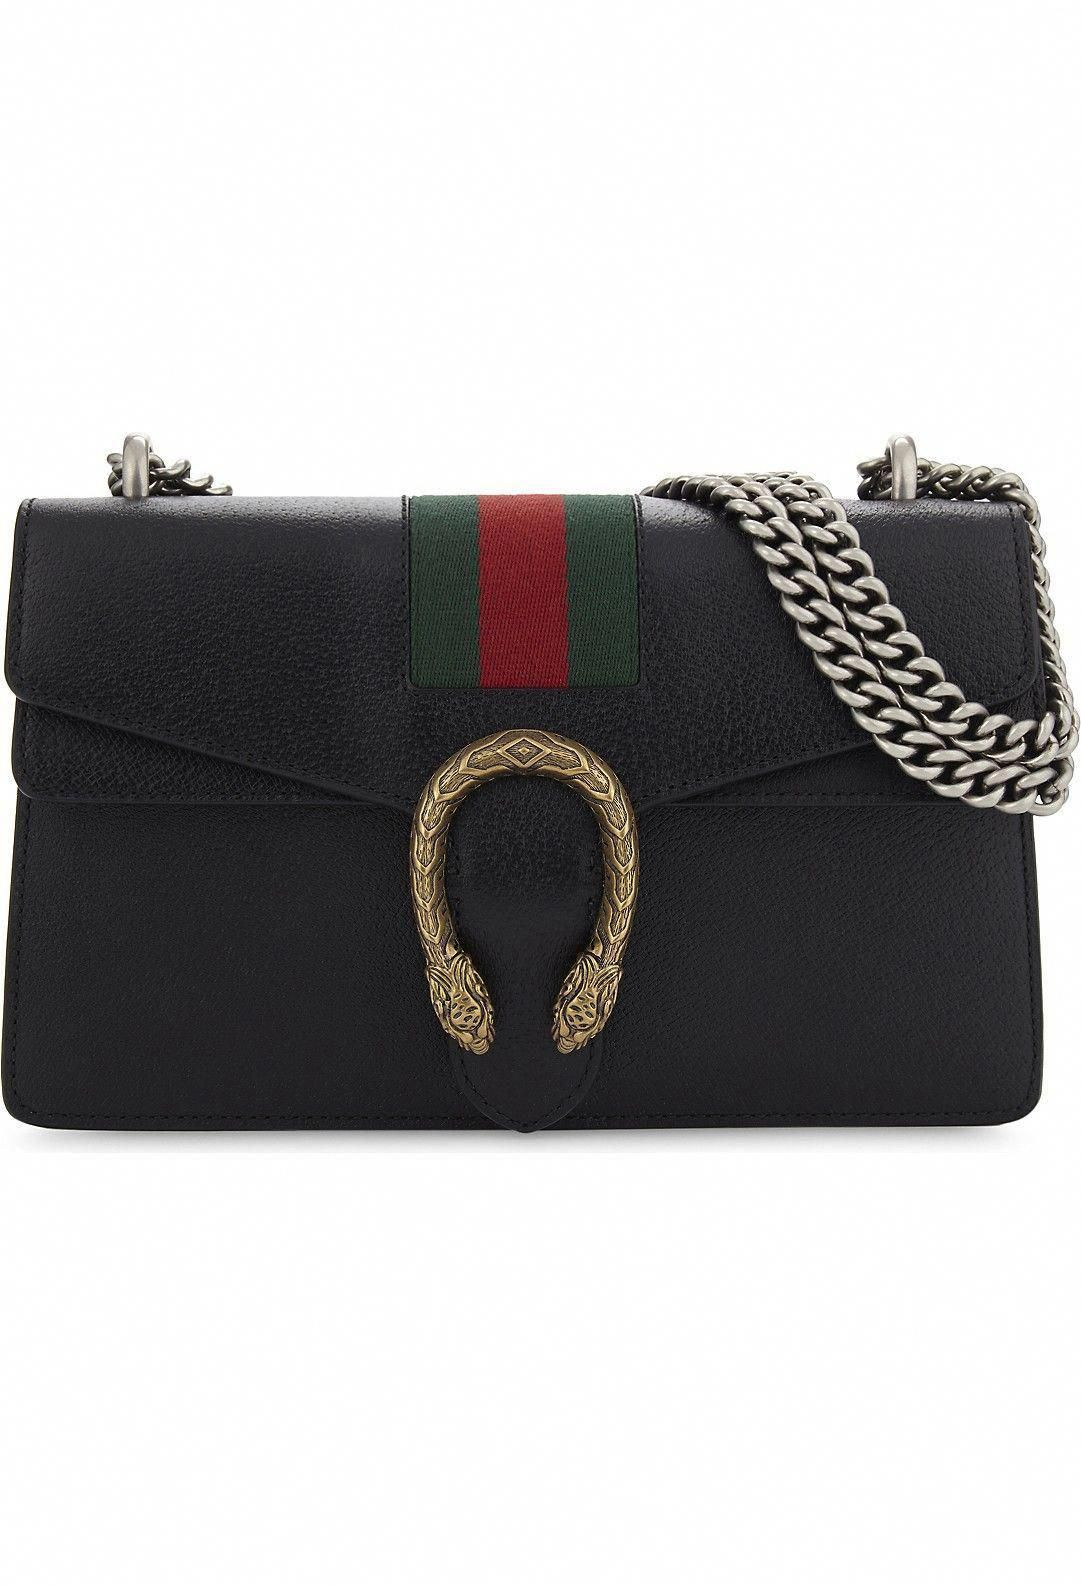 439201bbb8a GUCCI - Dionysus web stripe small leather shoulder bag